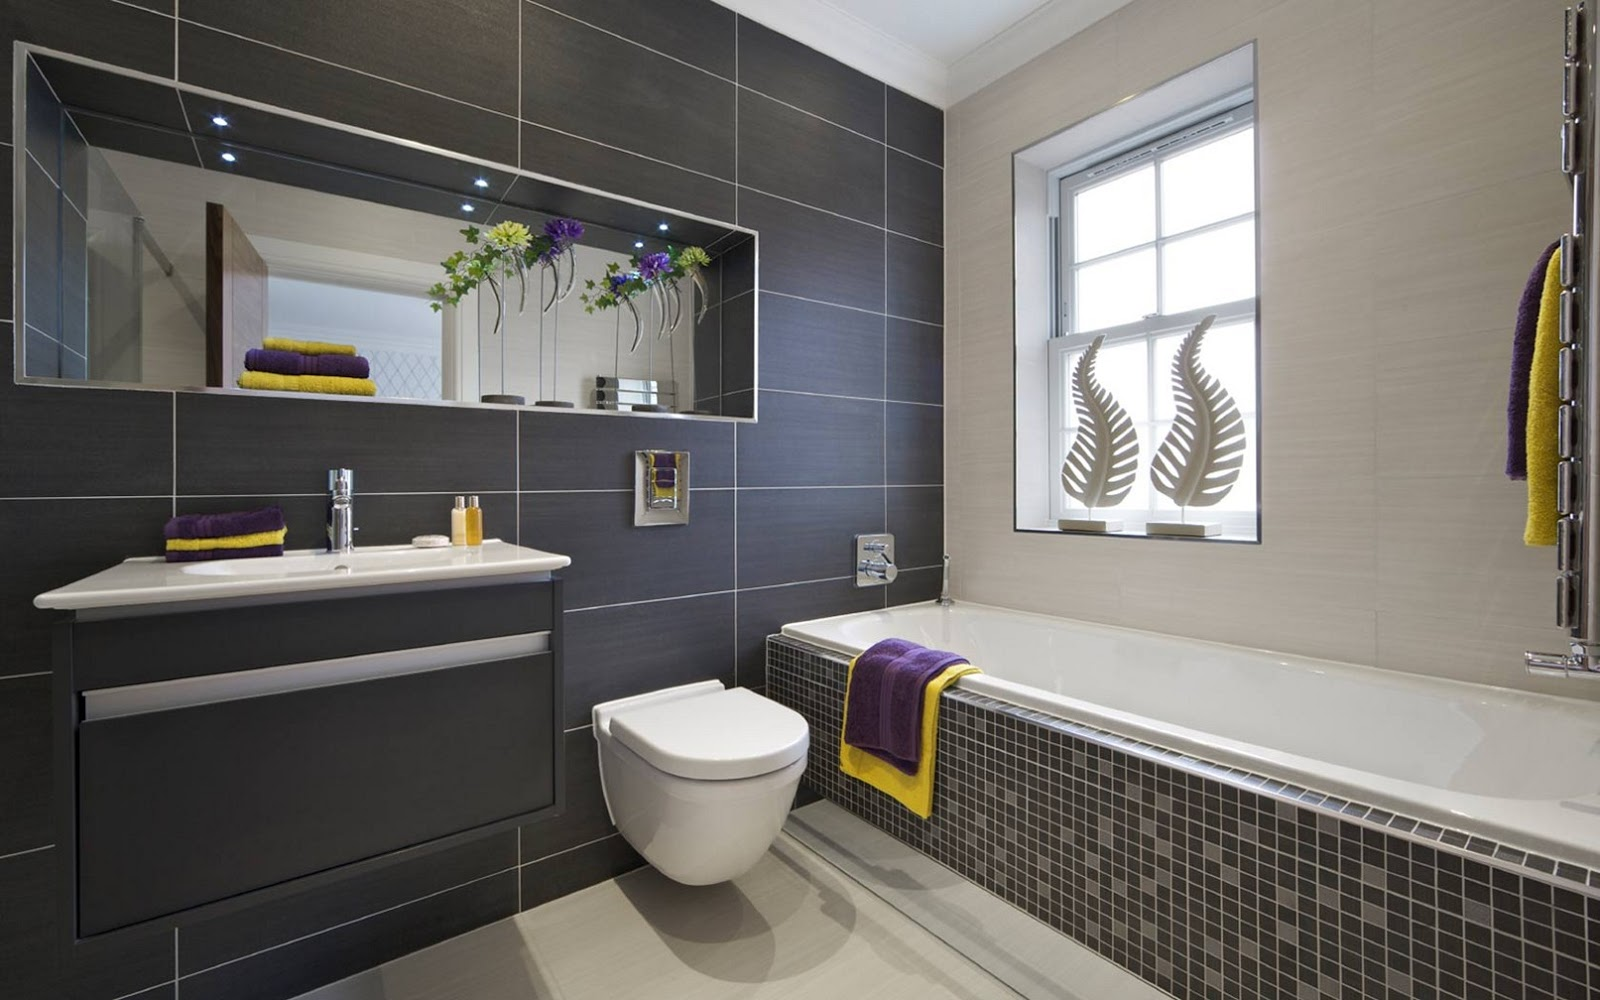 Uncommon Ways To Refresh Your Bathroom For Impression! Home Decor